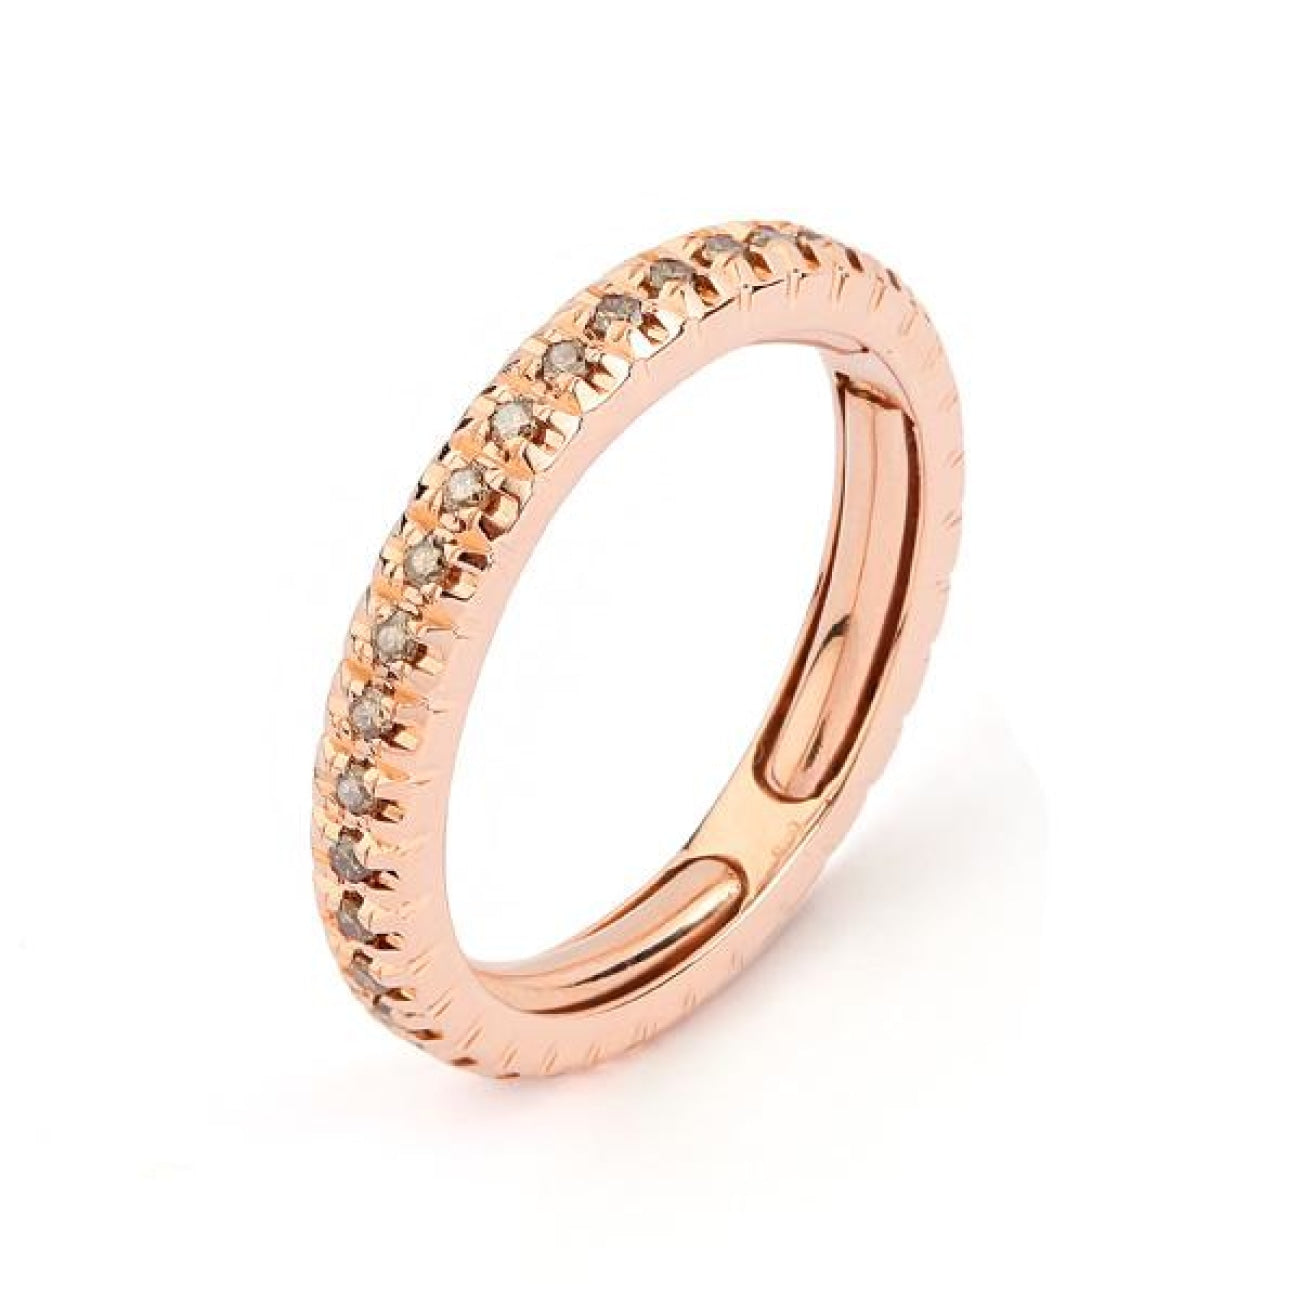 Facet Barcelona Jewelry - Rose Gold Contemporary Full Eternity Ring | Manfredi Jewels